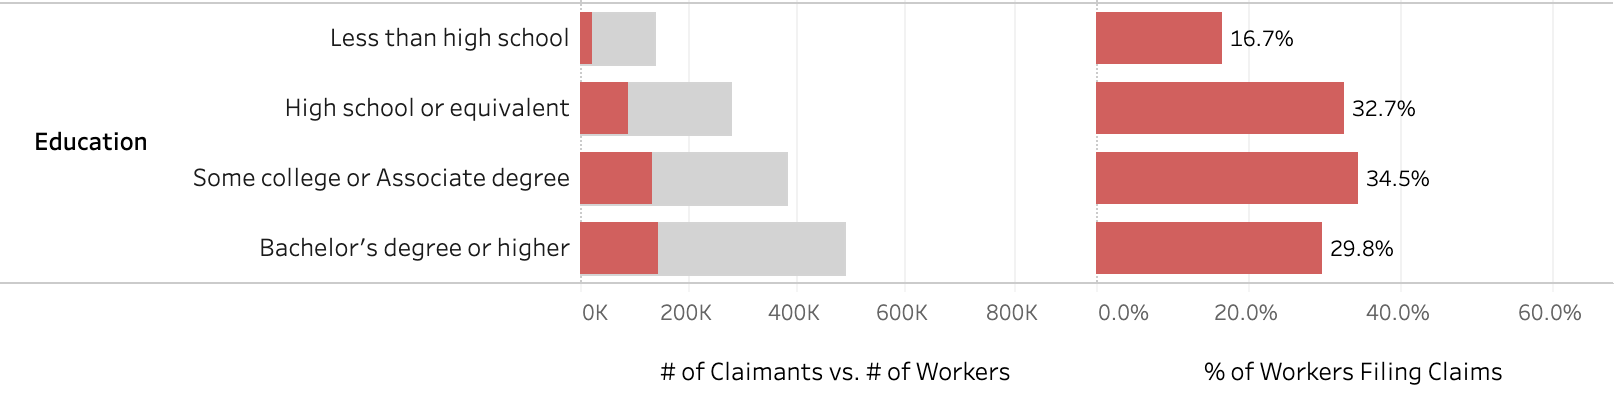 chart depicting the % of workers filing claims for unemployment, by education level